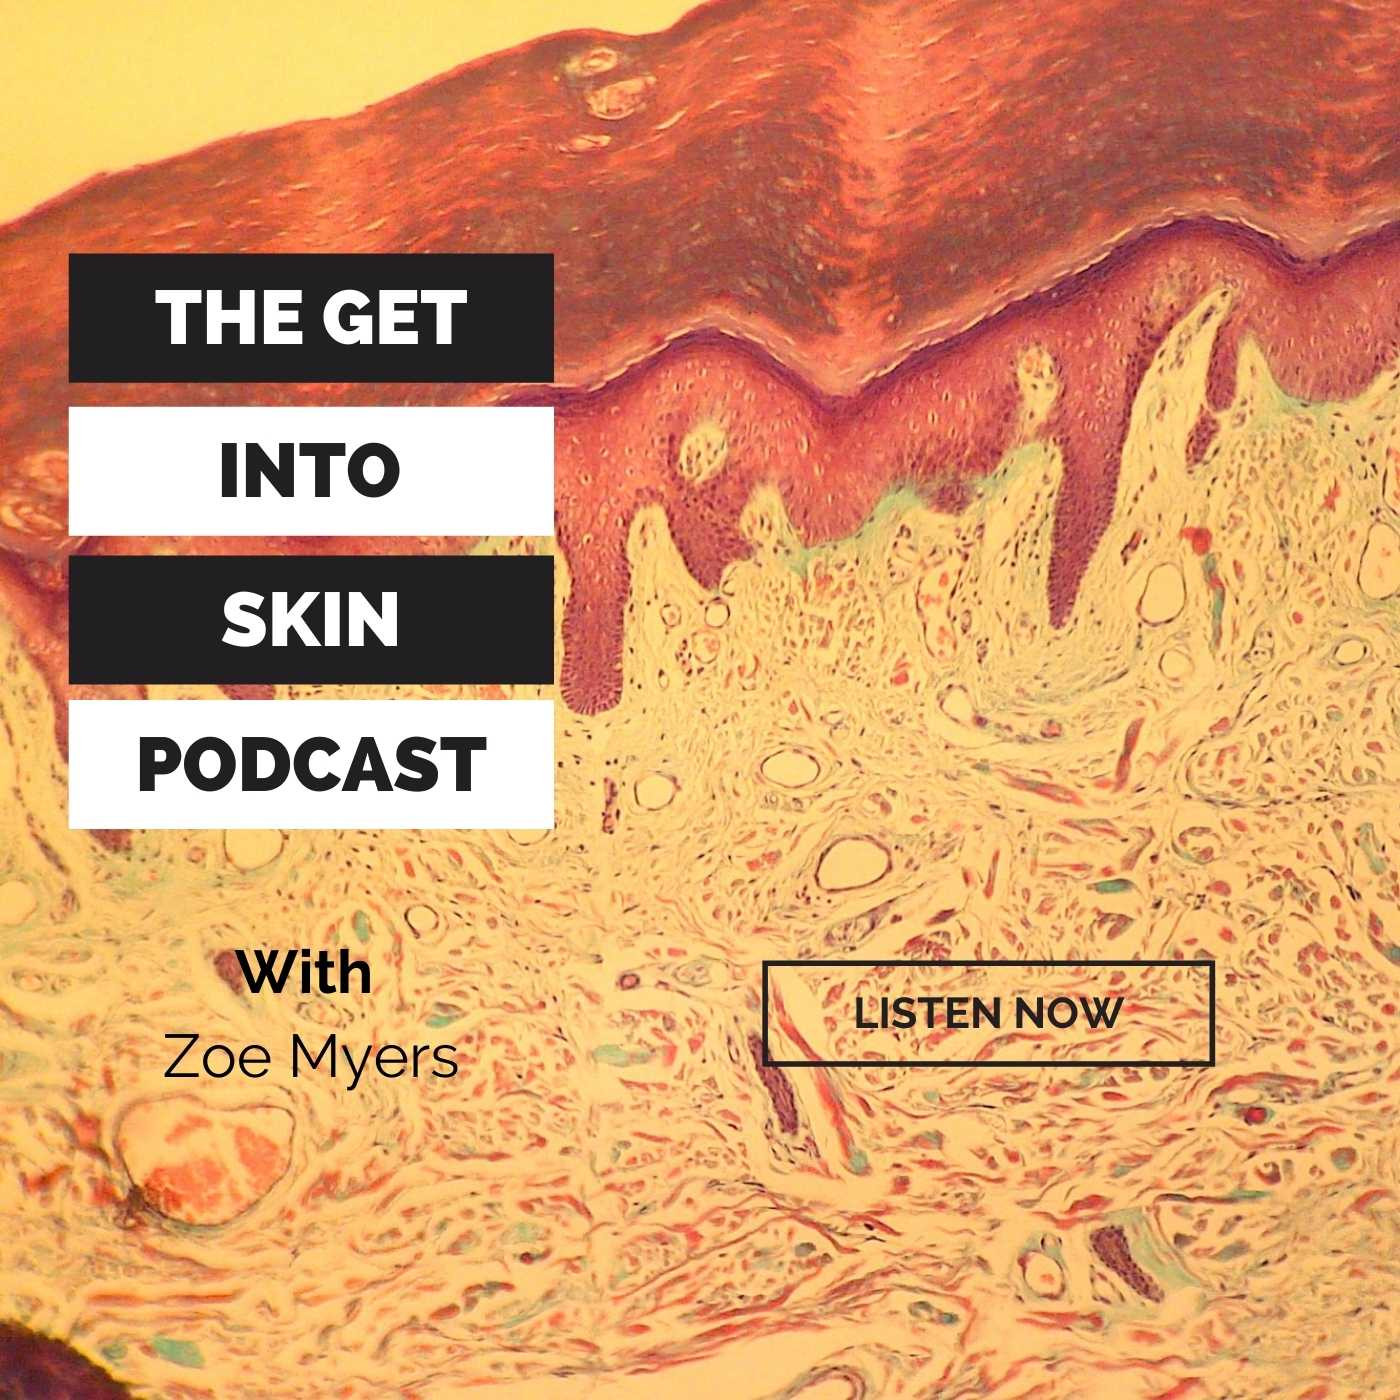 The Get Into Skin Podcast